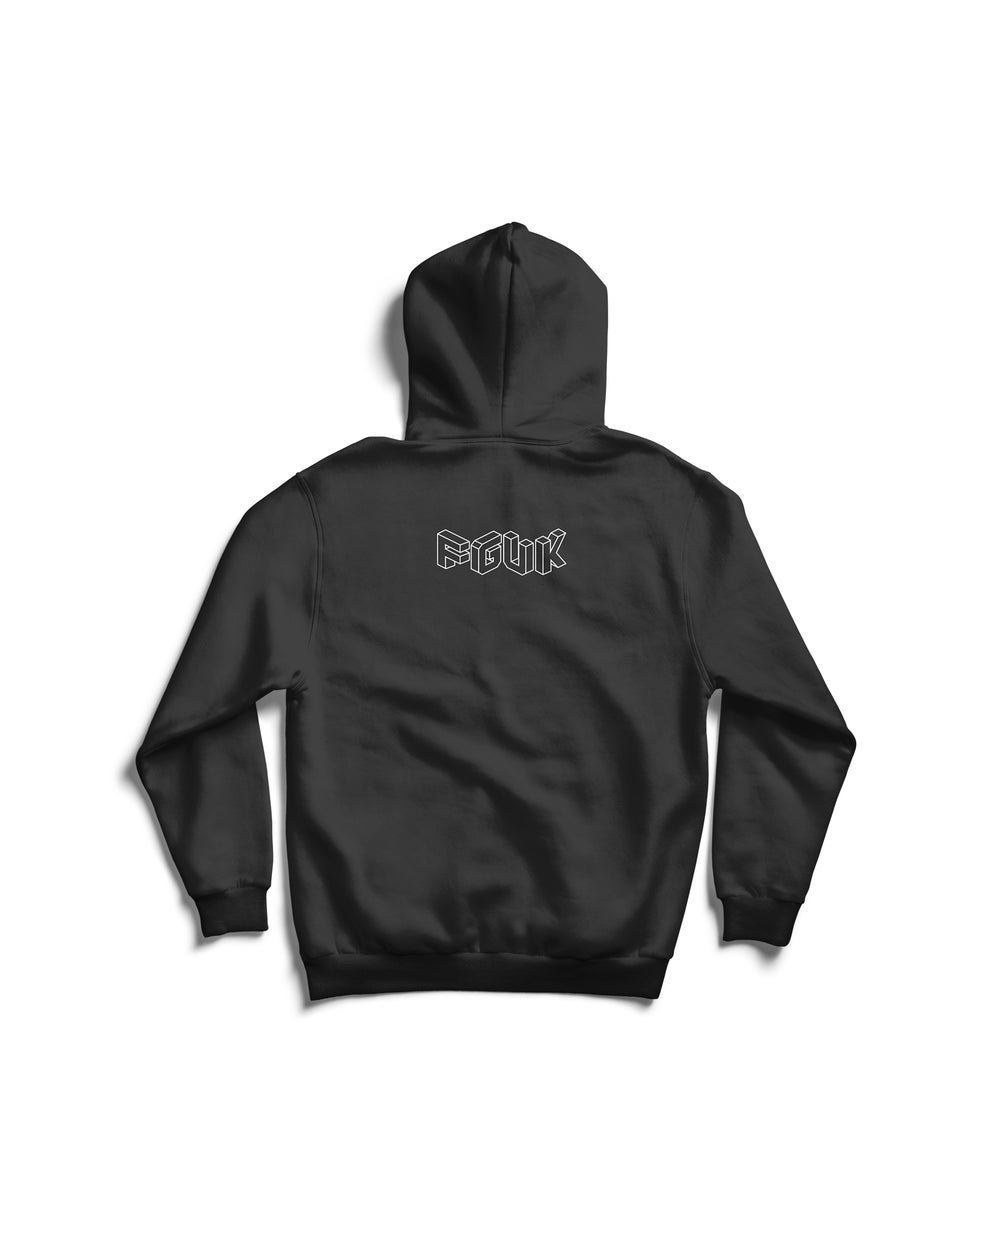 IT'S THE CAUCASITY FOR ME HOODIE IN (BLACK)